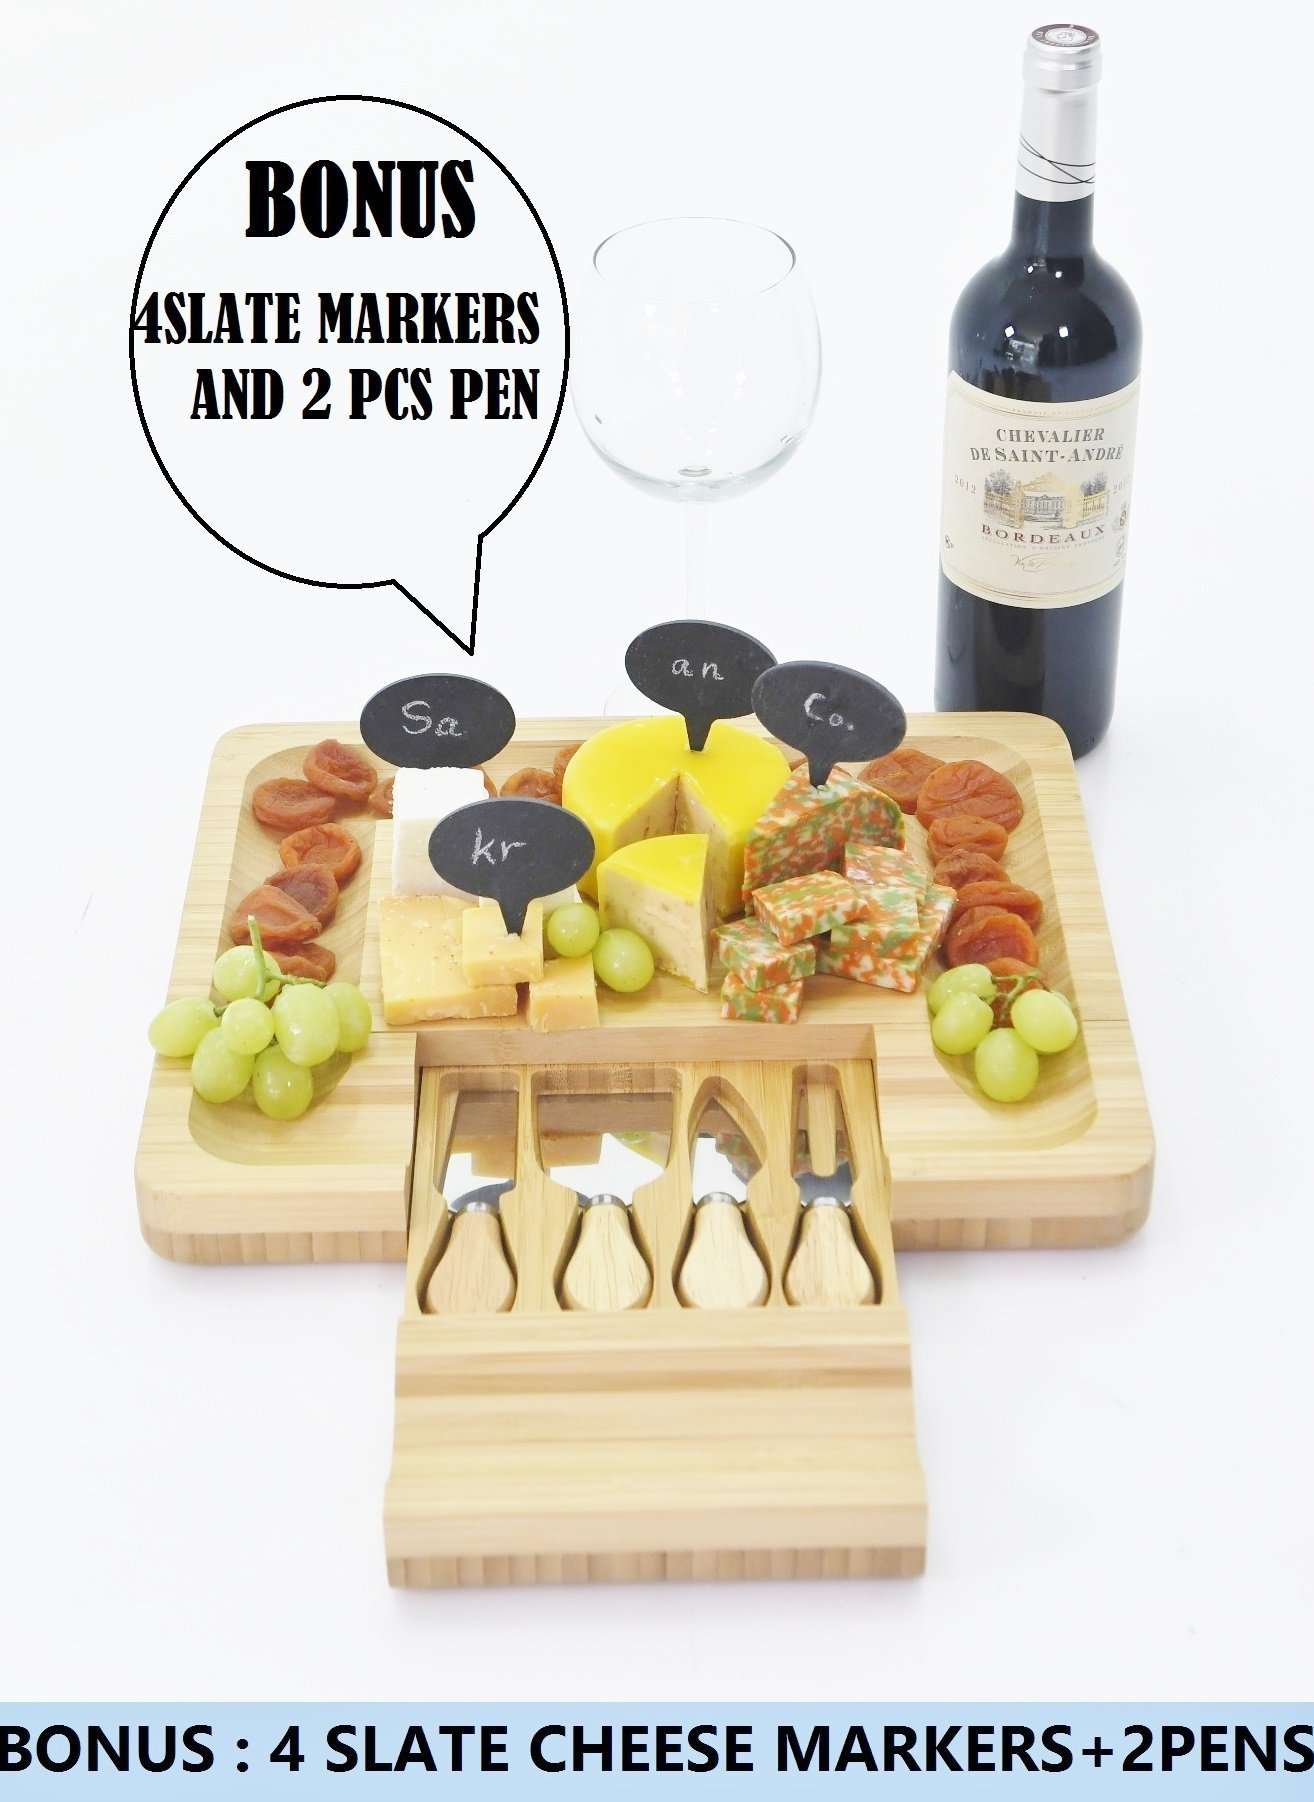 Sakranco Cheese Board Tray With Slide Out Drawer & Cutlery Set (Knife, Spreader, Fork & Shaver) |BONUS Complimentary 4 Slate Markers & 2 Pens | 100% Natural Bamboo Platter For Crackers, Fruit, Meat ..